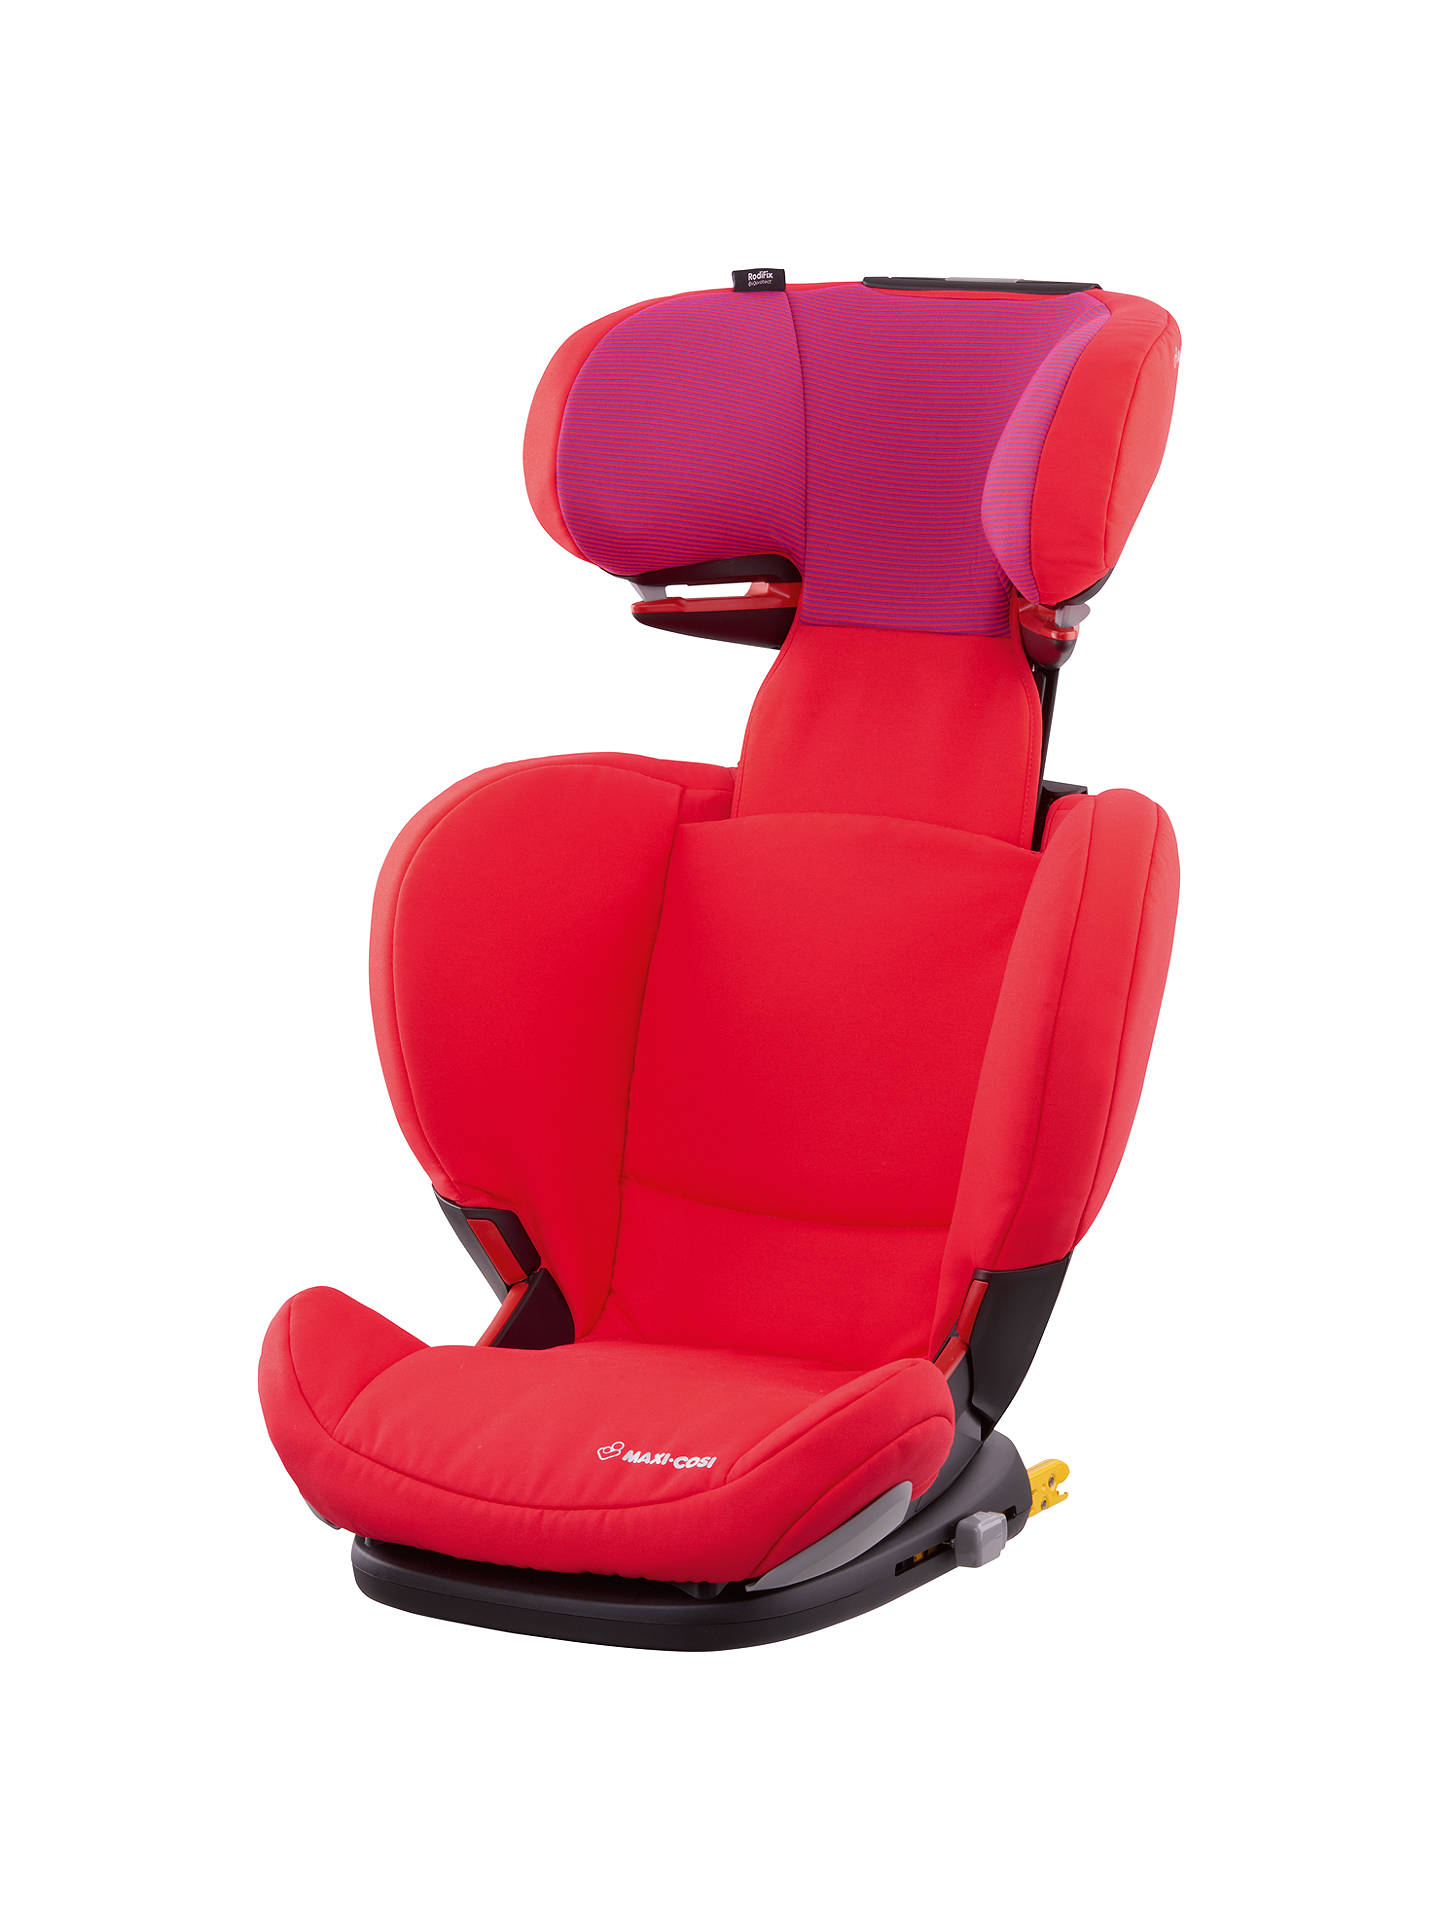 maxi cosi rodifix air protect group 2 3 car seat red orchid at john lewis partners. Black Bedroom Furniture Sets. Home Design Ideas